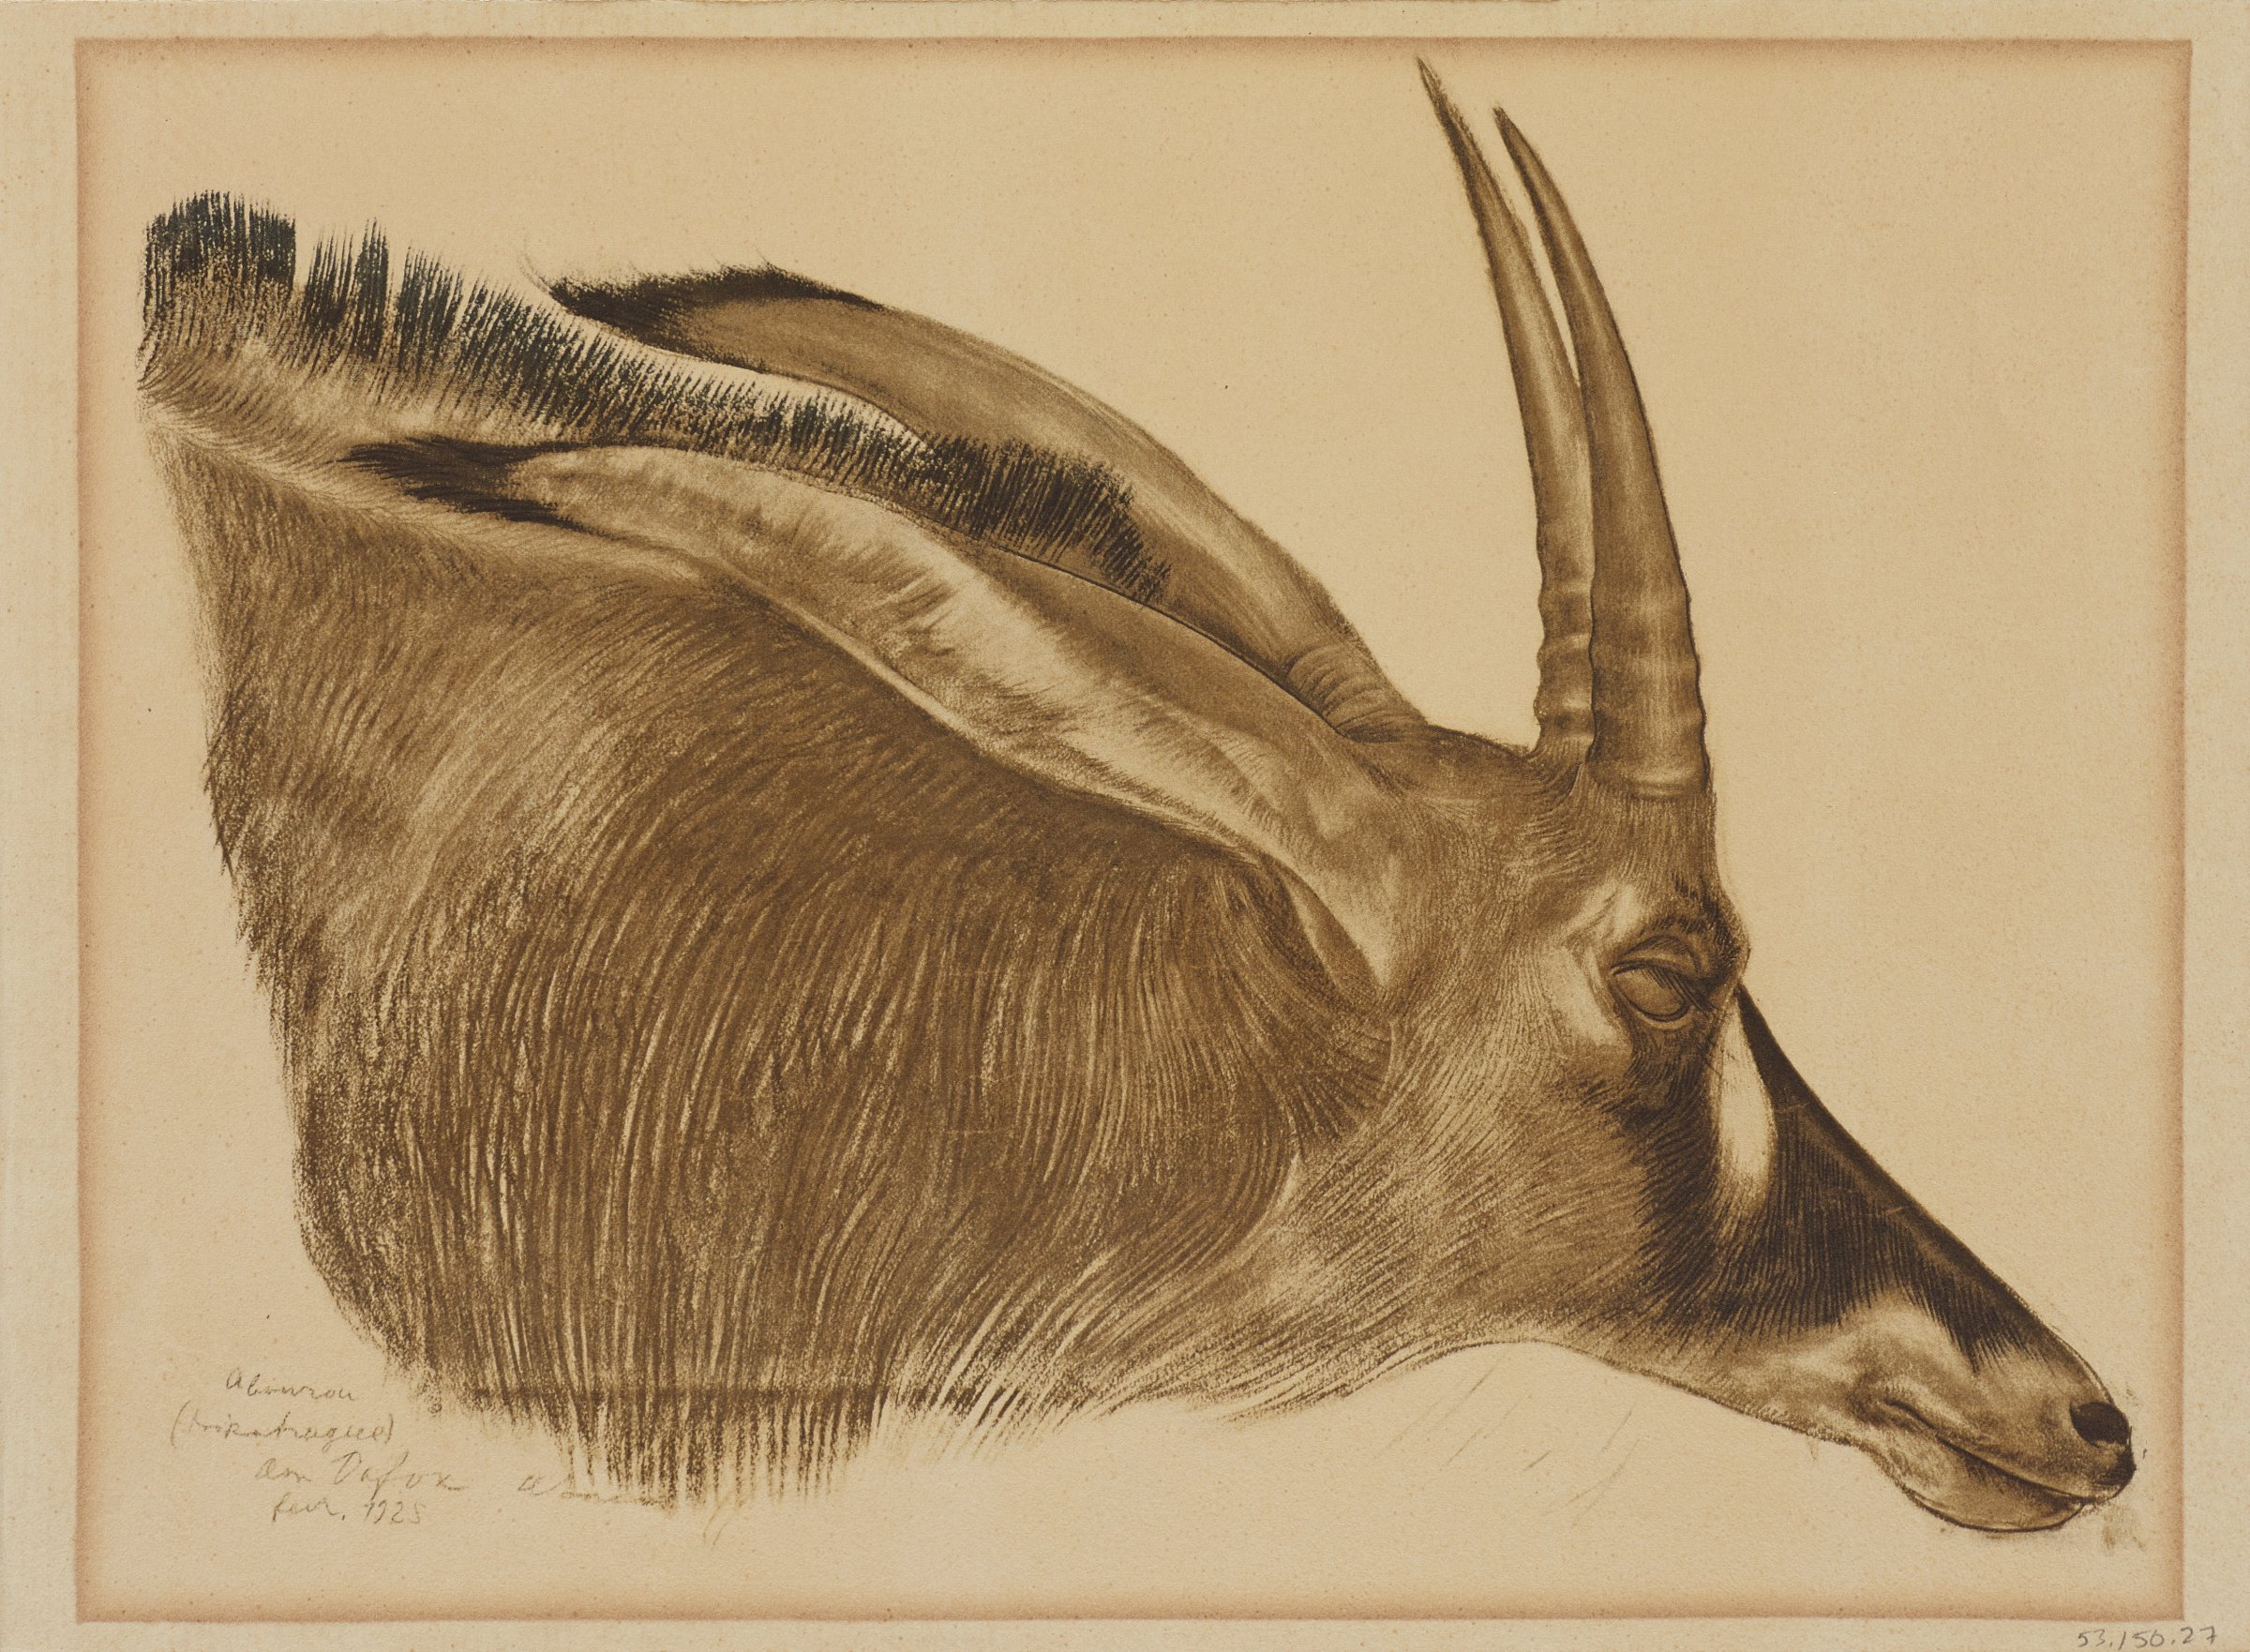 The head of an antilope is is seen in profile with closed eyes. The image is oriented sideways. This series is a product of Jacovleff's involvement in the Expédition Citroën Centre-Afrique.